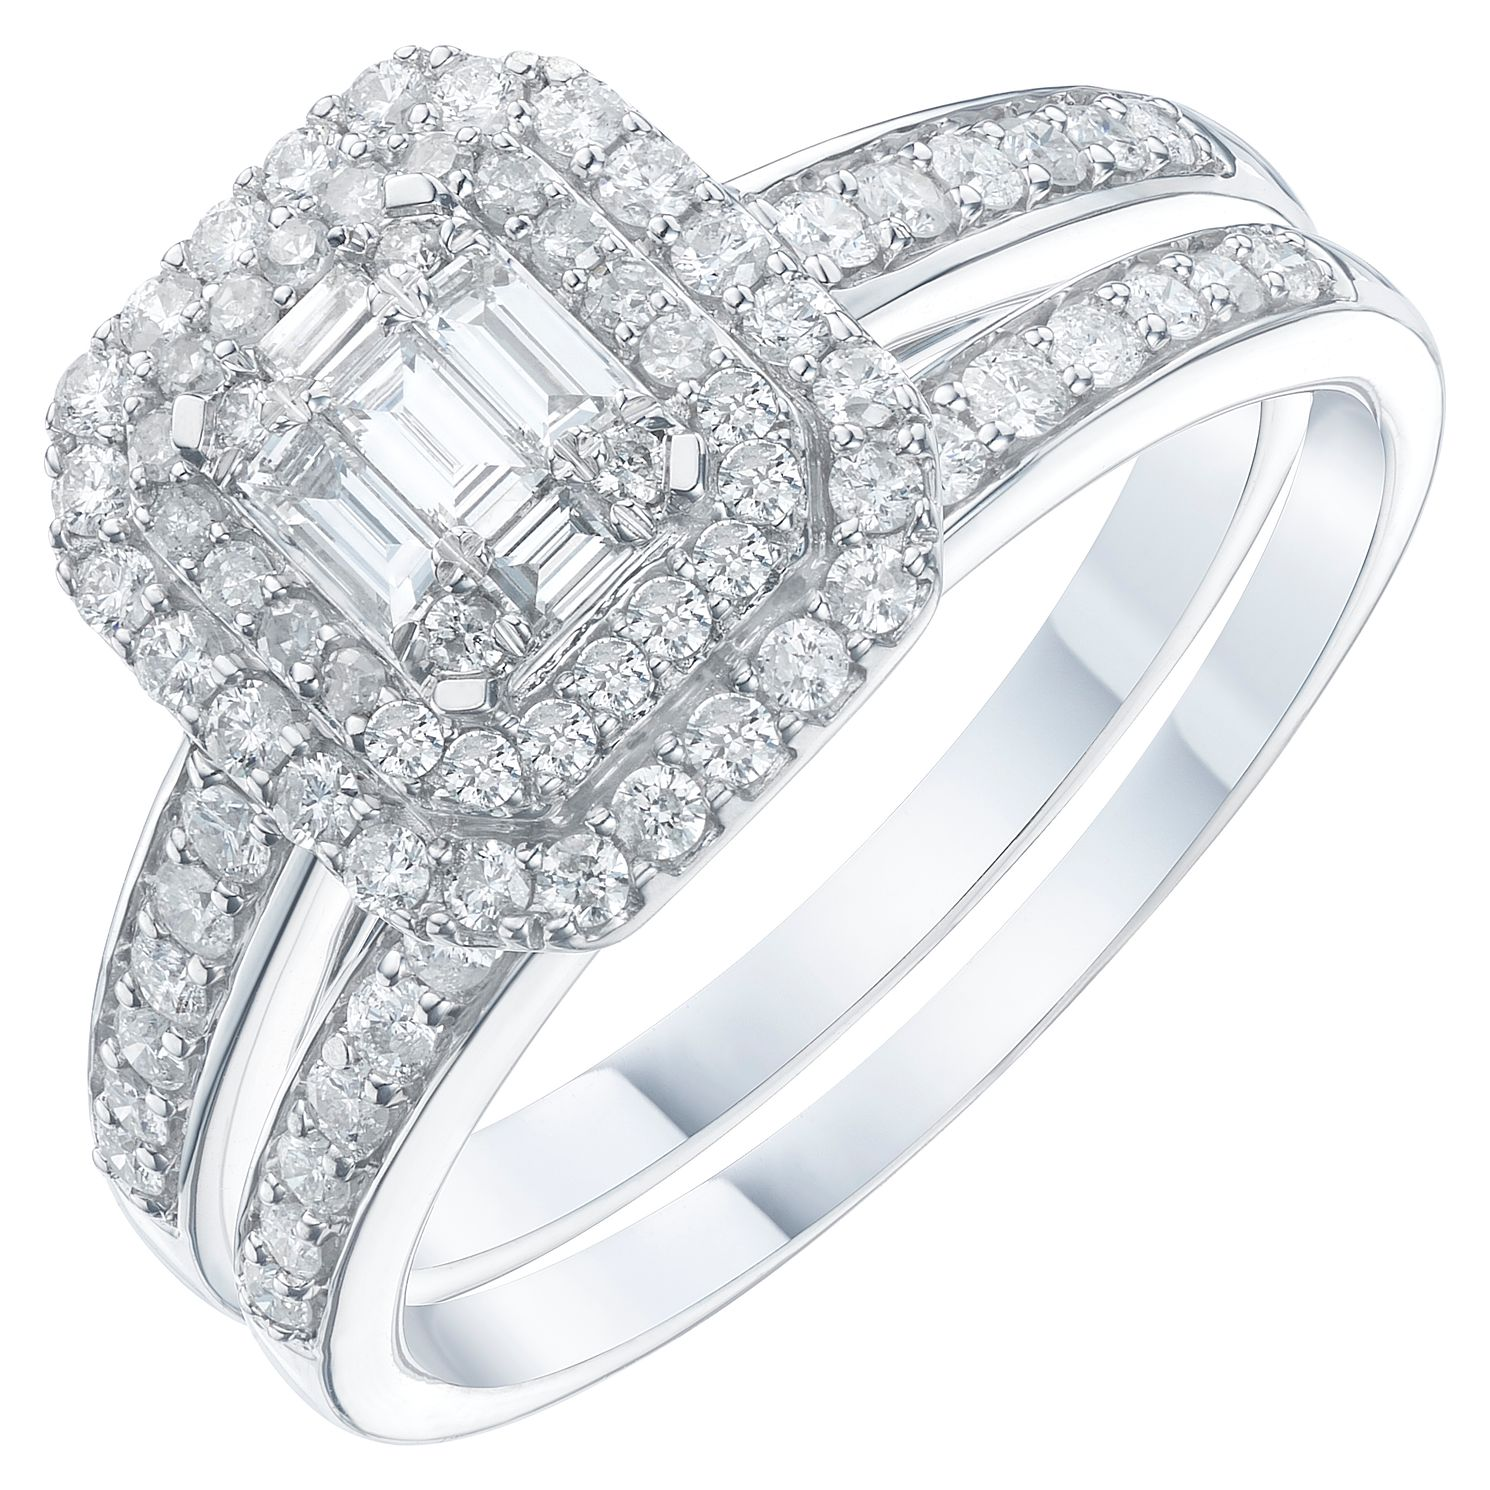 Perfect Fit 9ct White Gold 2/3ct Diamond Twist Bridal Set - Product number 6228933